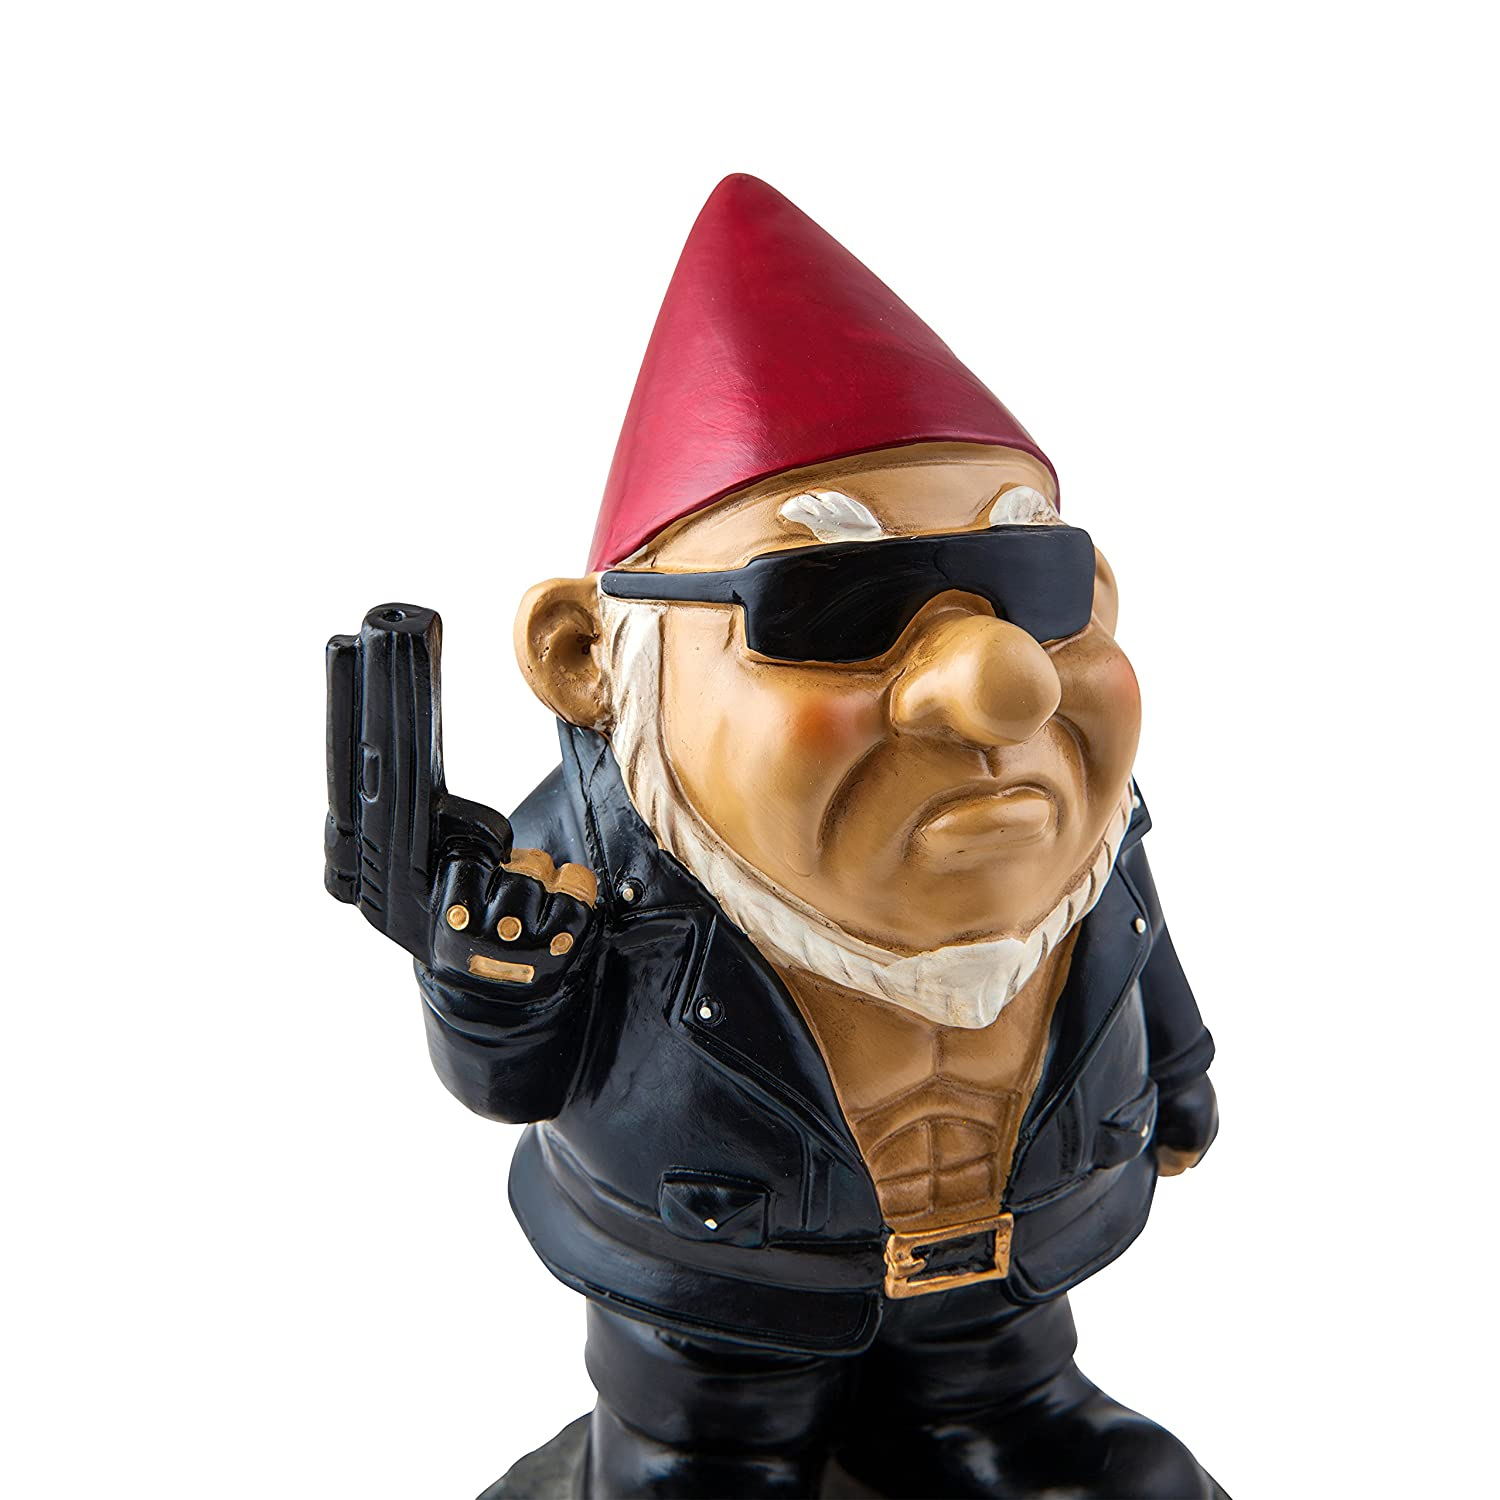 Amazon.com : Big Mouth Toys The Gnominator Garden Gnome Statues : Garden U0026  Outdoor